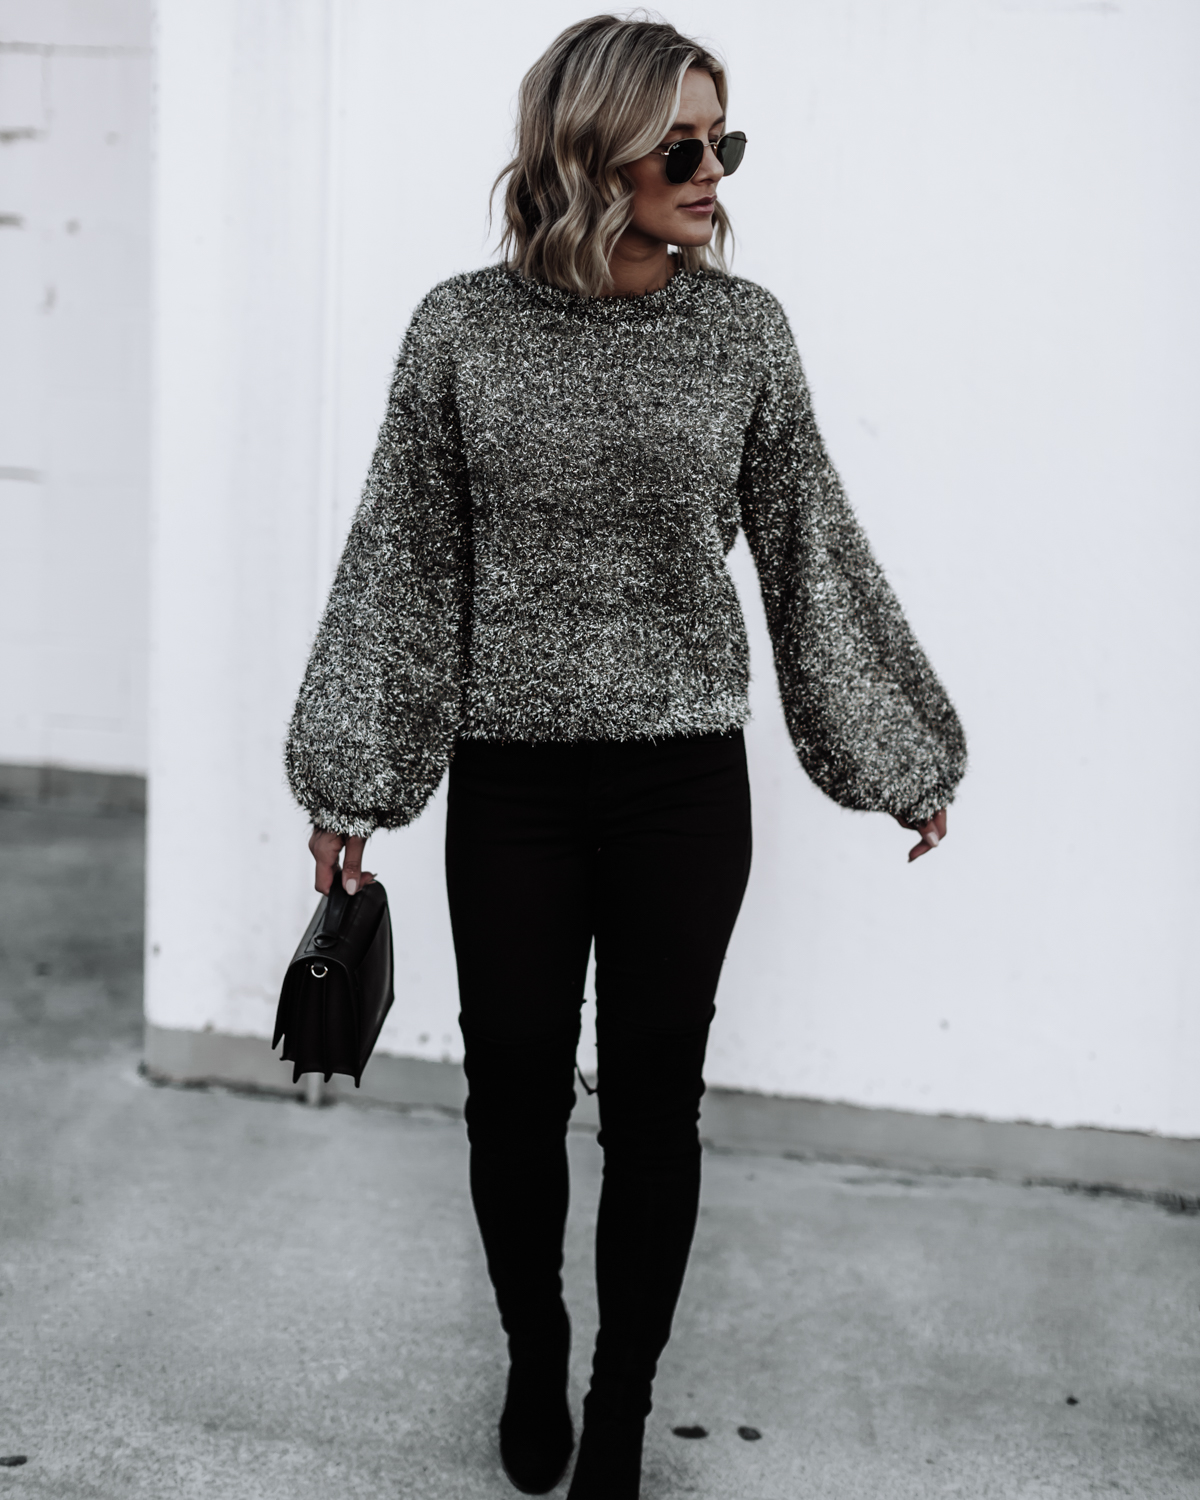 blogger So Sage wearing a fluffy sweater and jeans with OTK boots